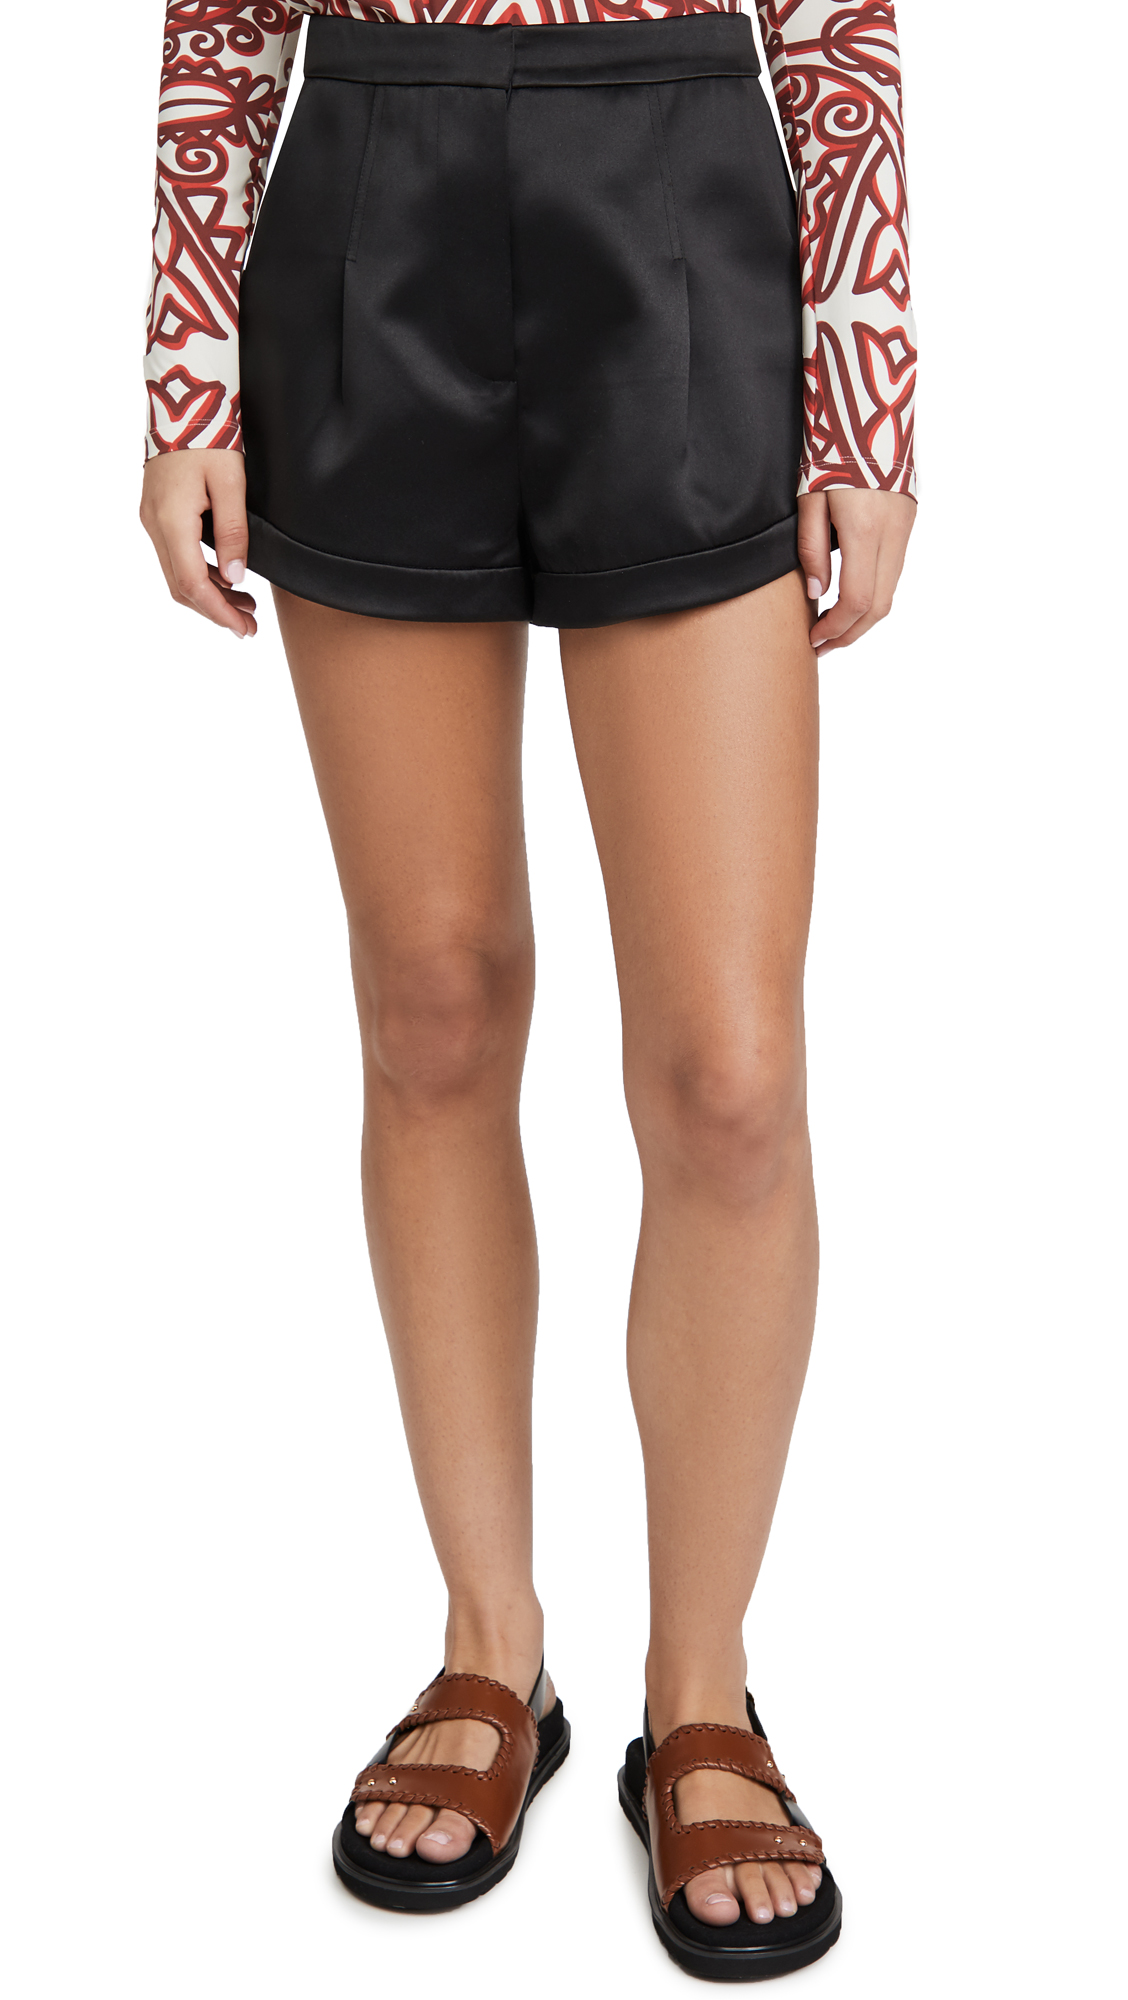 Alexis Gaines Shorts